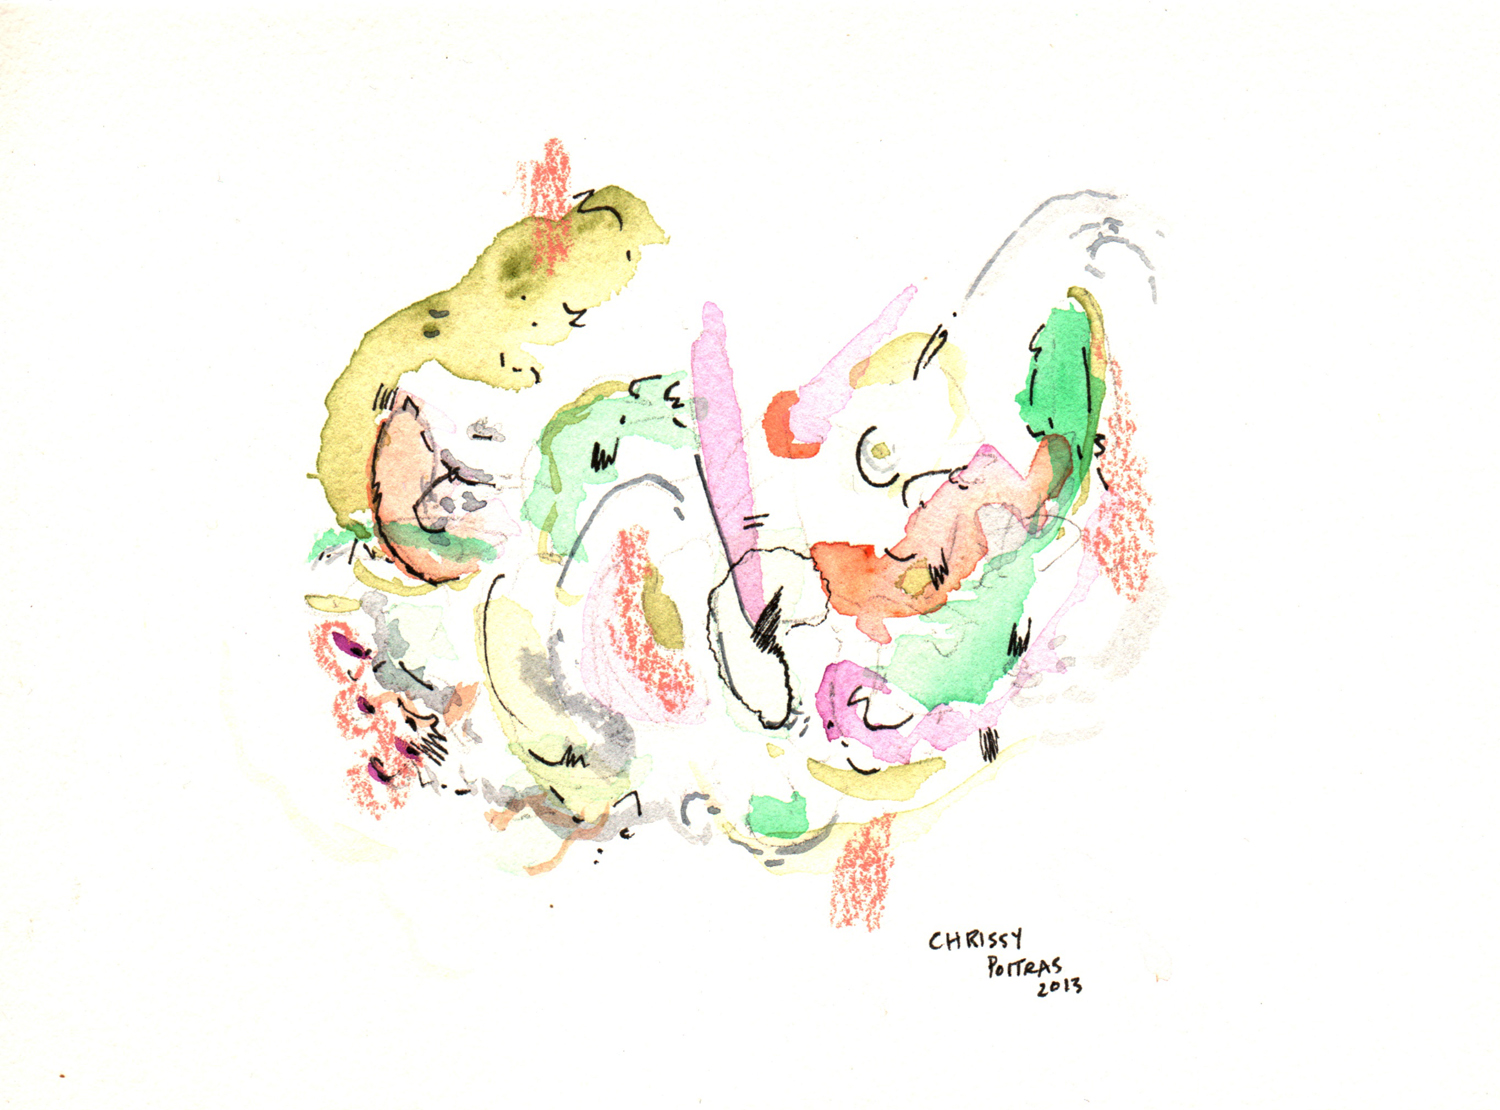 Chrissy Poitras, Painting, Abstract, Pink, Purple, Green, Watercolour, Pen, Mini, Paper work